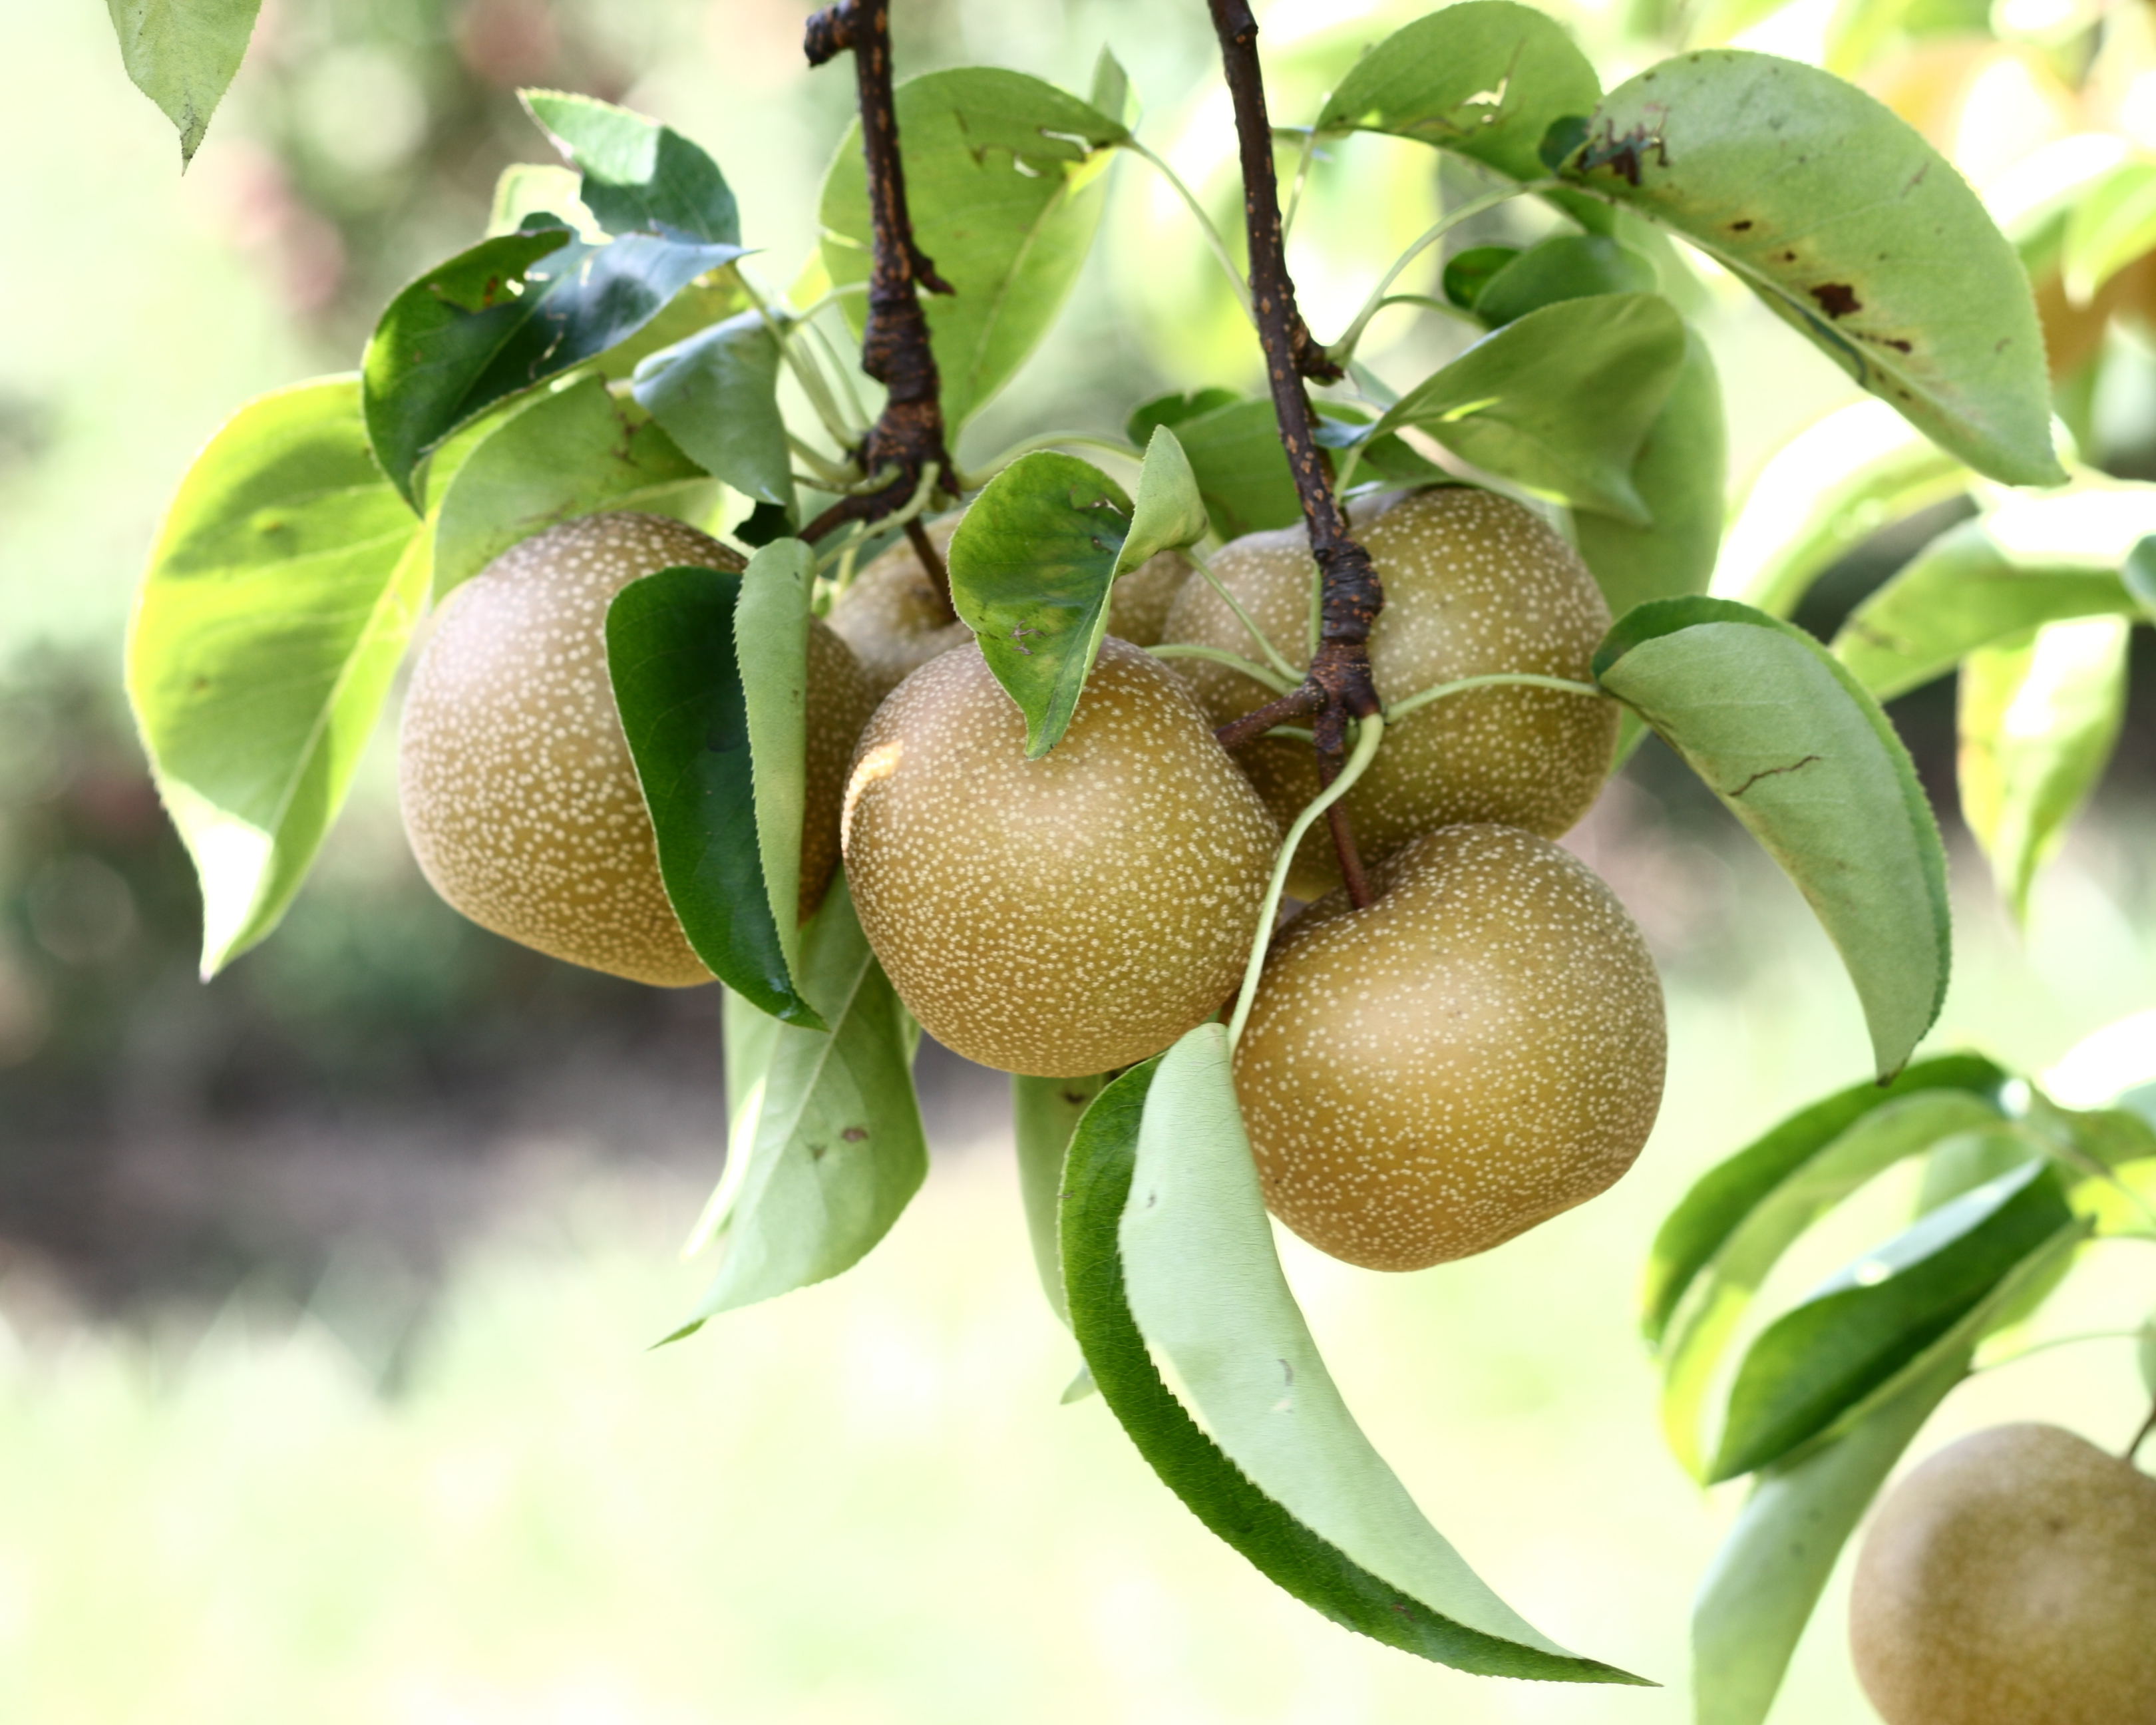 Hosui_Asian_pears_at_Lyman_Orchards,_2009-08-30